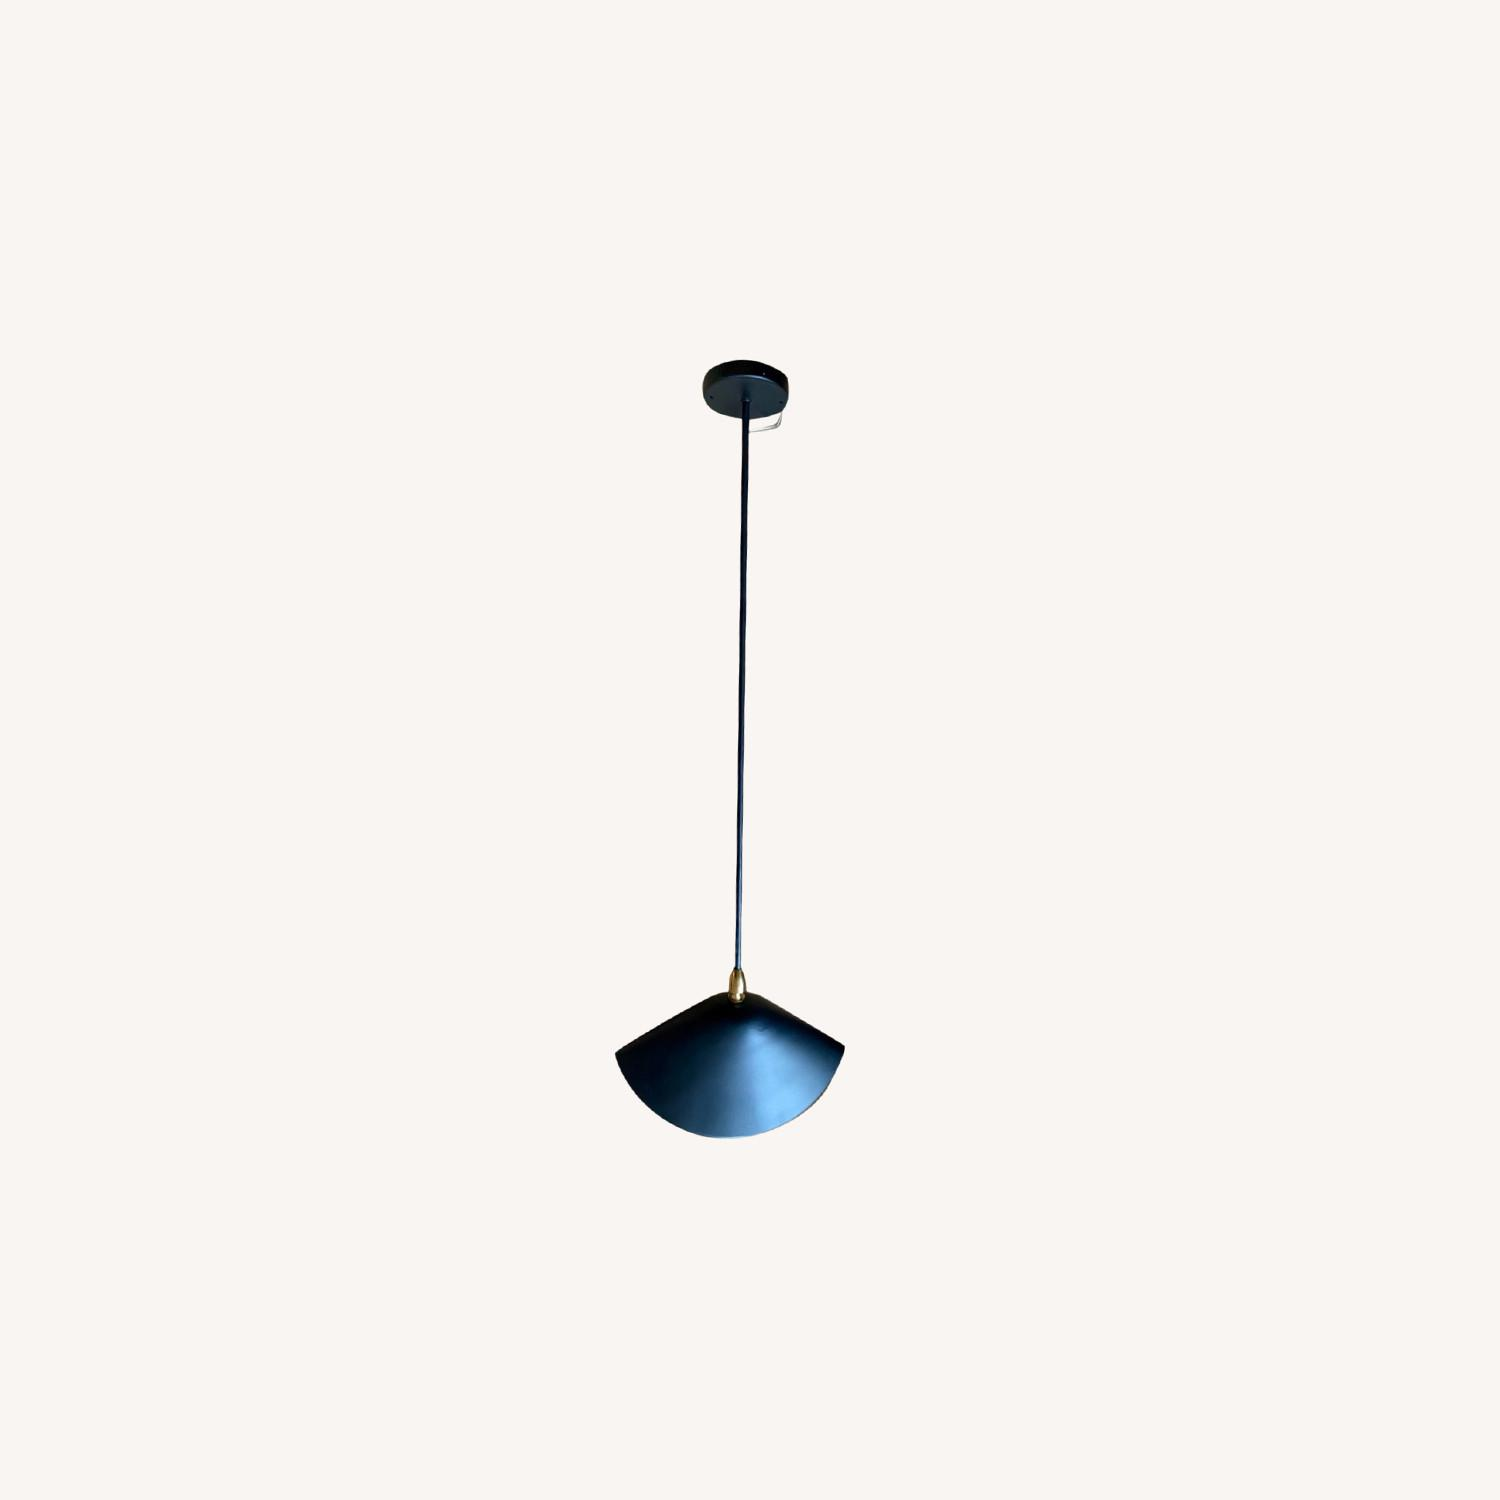 Replica Serge Mouille Library Lamp - image-0